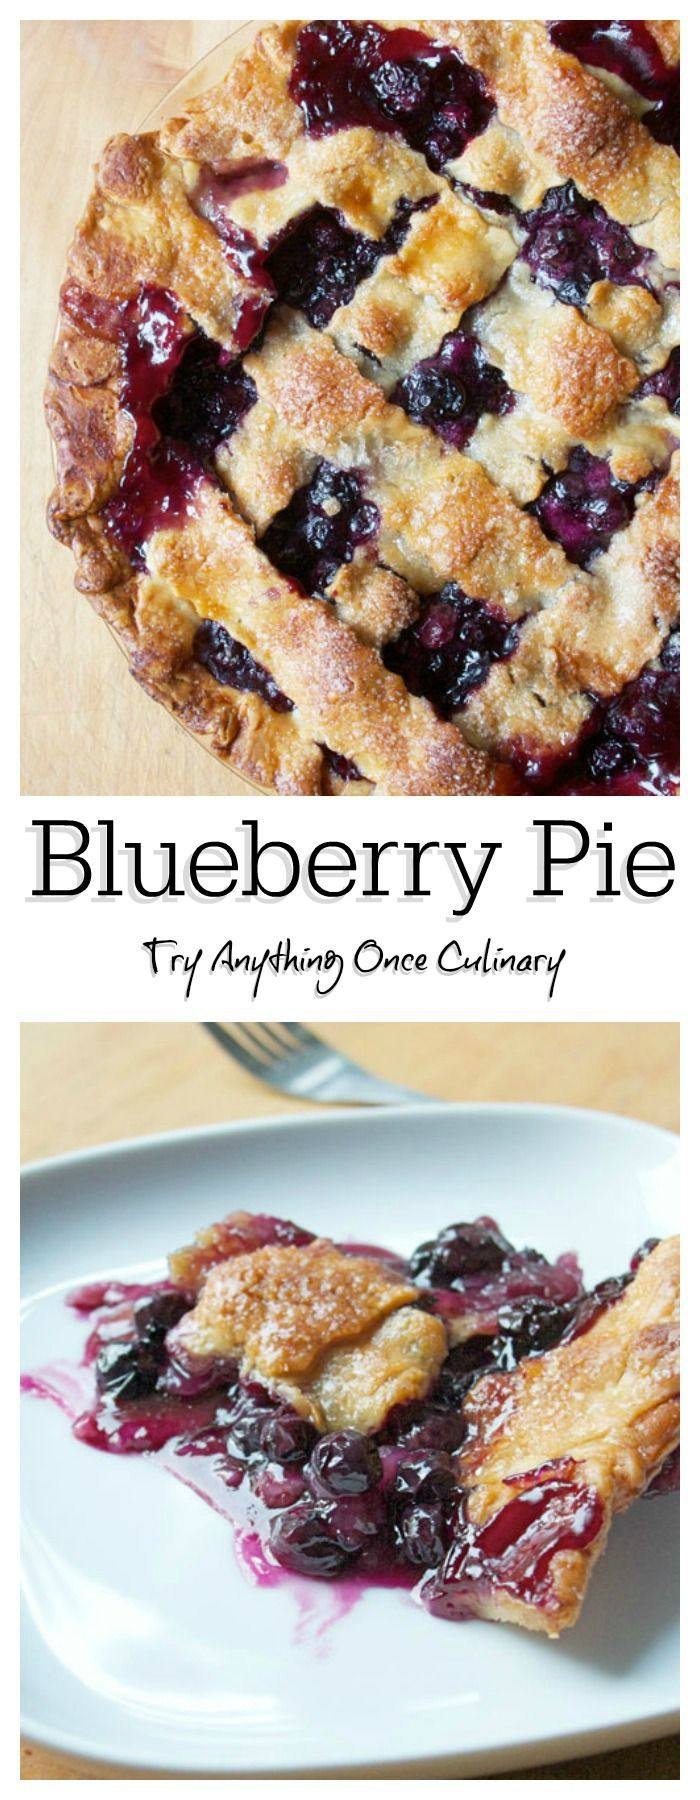 Have you ever made a blueberry pie? You should! Take a peek at my efficient way of mixing it up. :-)